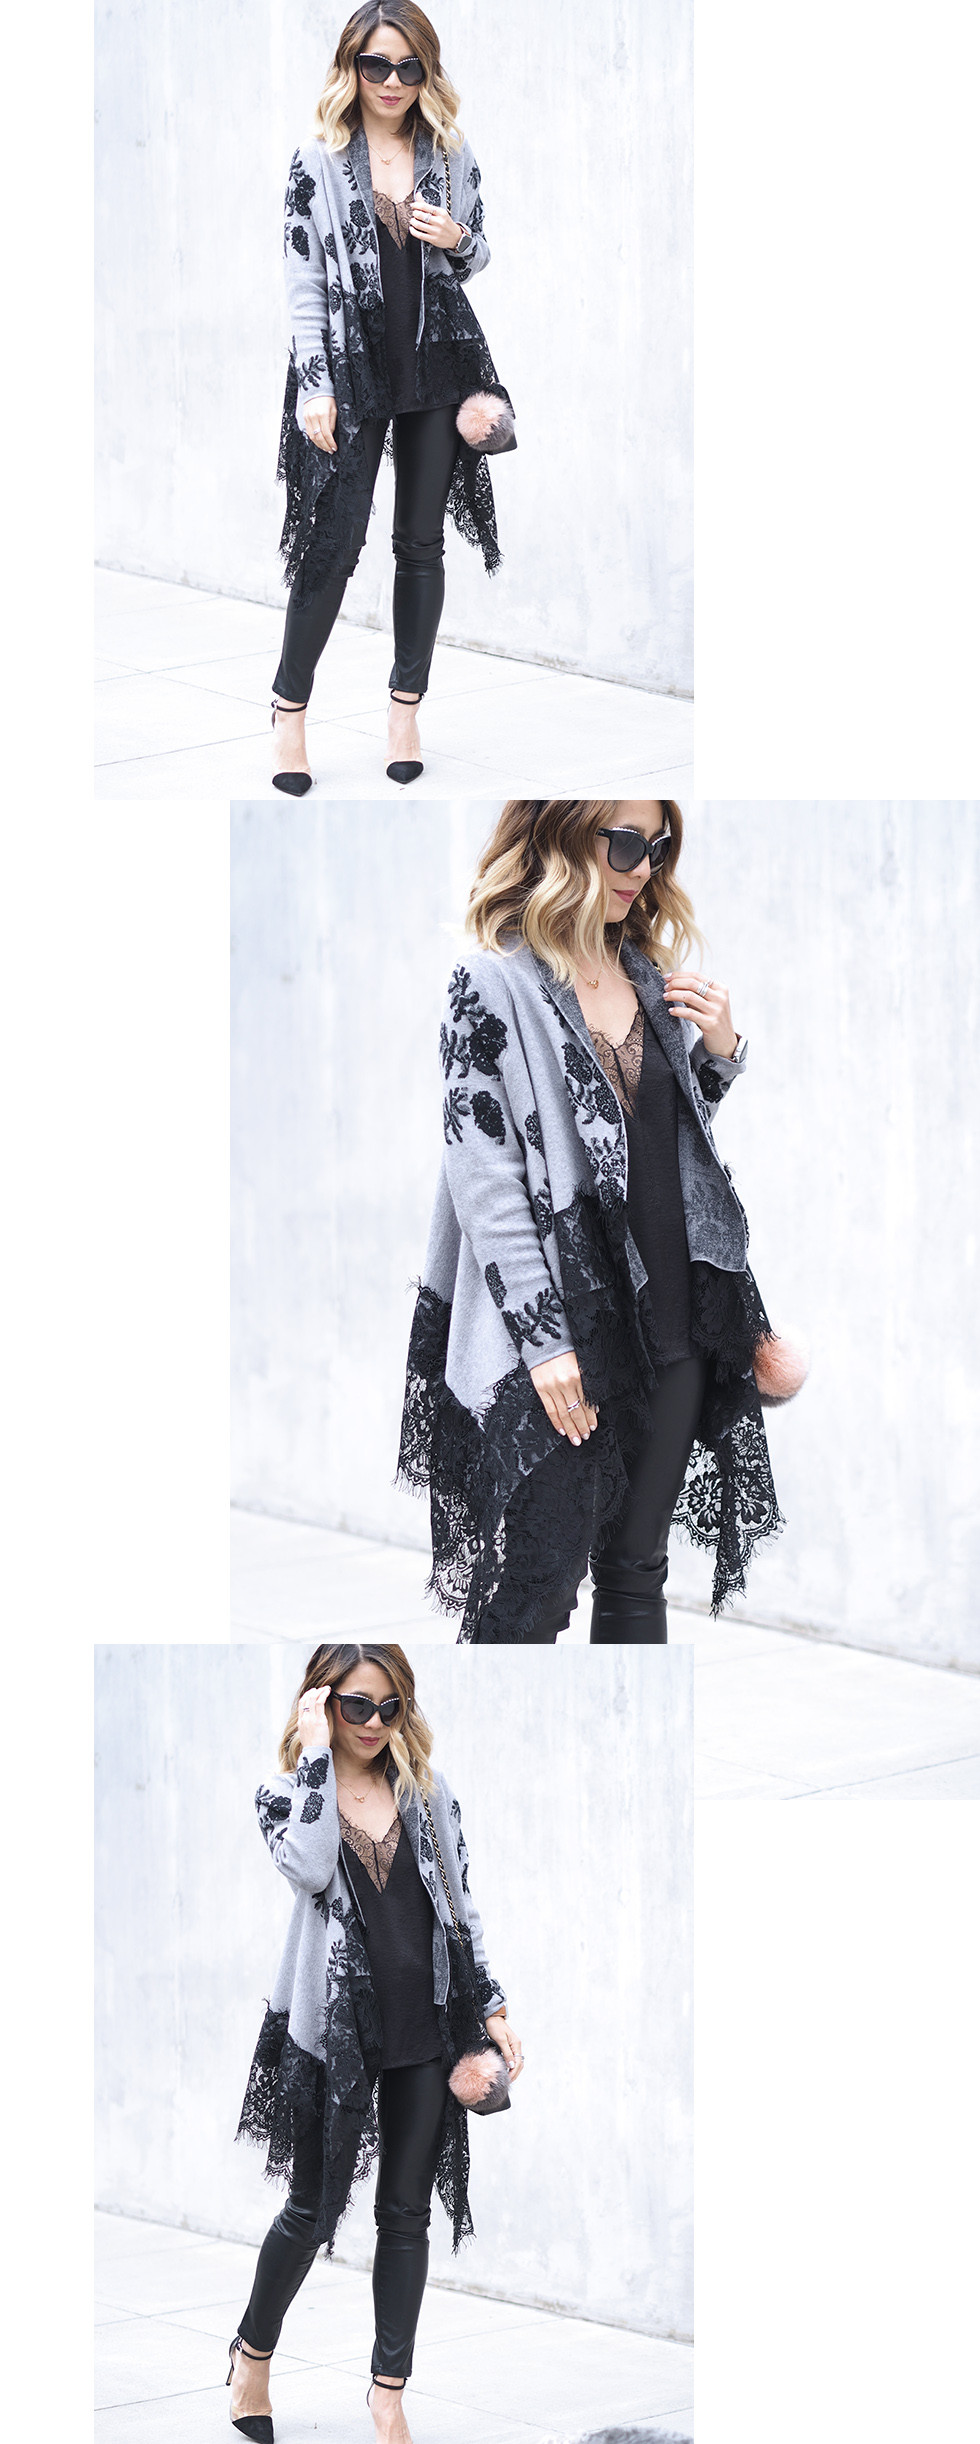 Dezzal Lace Cardigan | Lam in Louboutins